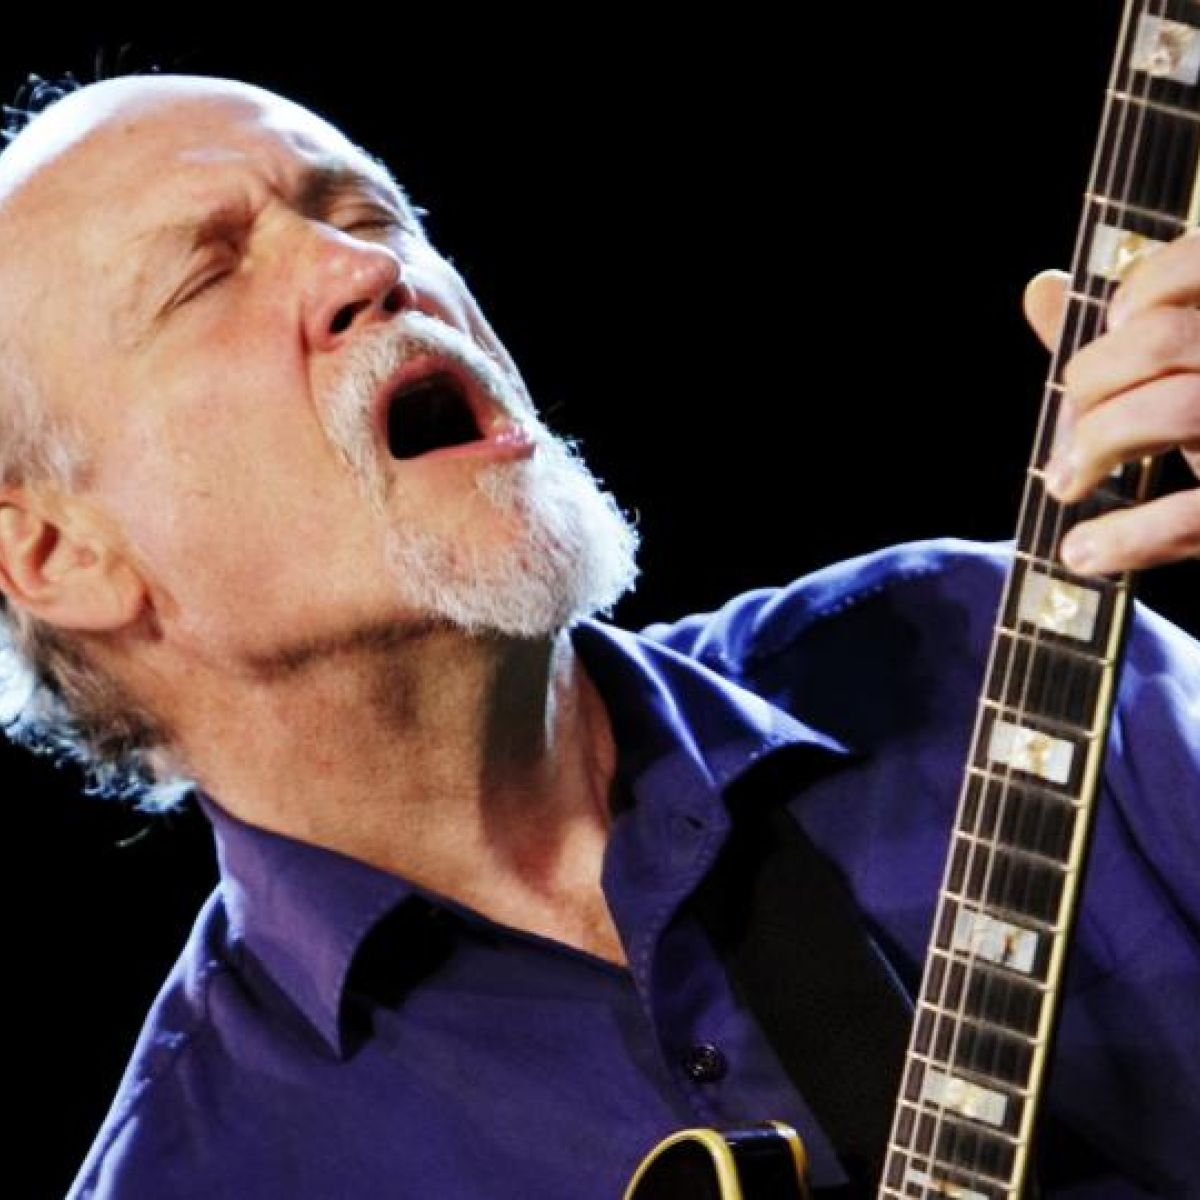 John Scofield Be Honest Play Whats Inside Steal From Everyone